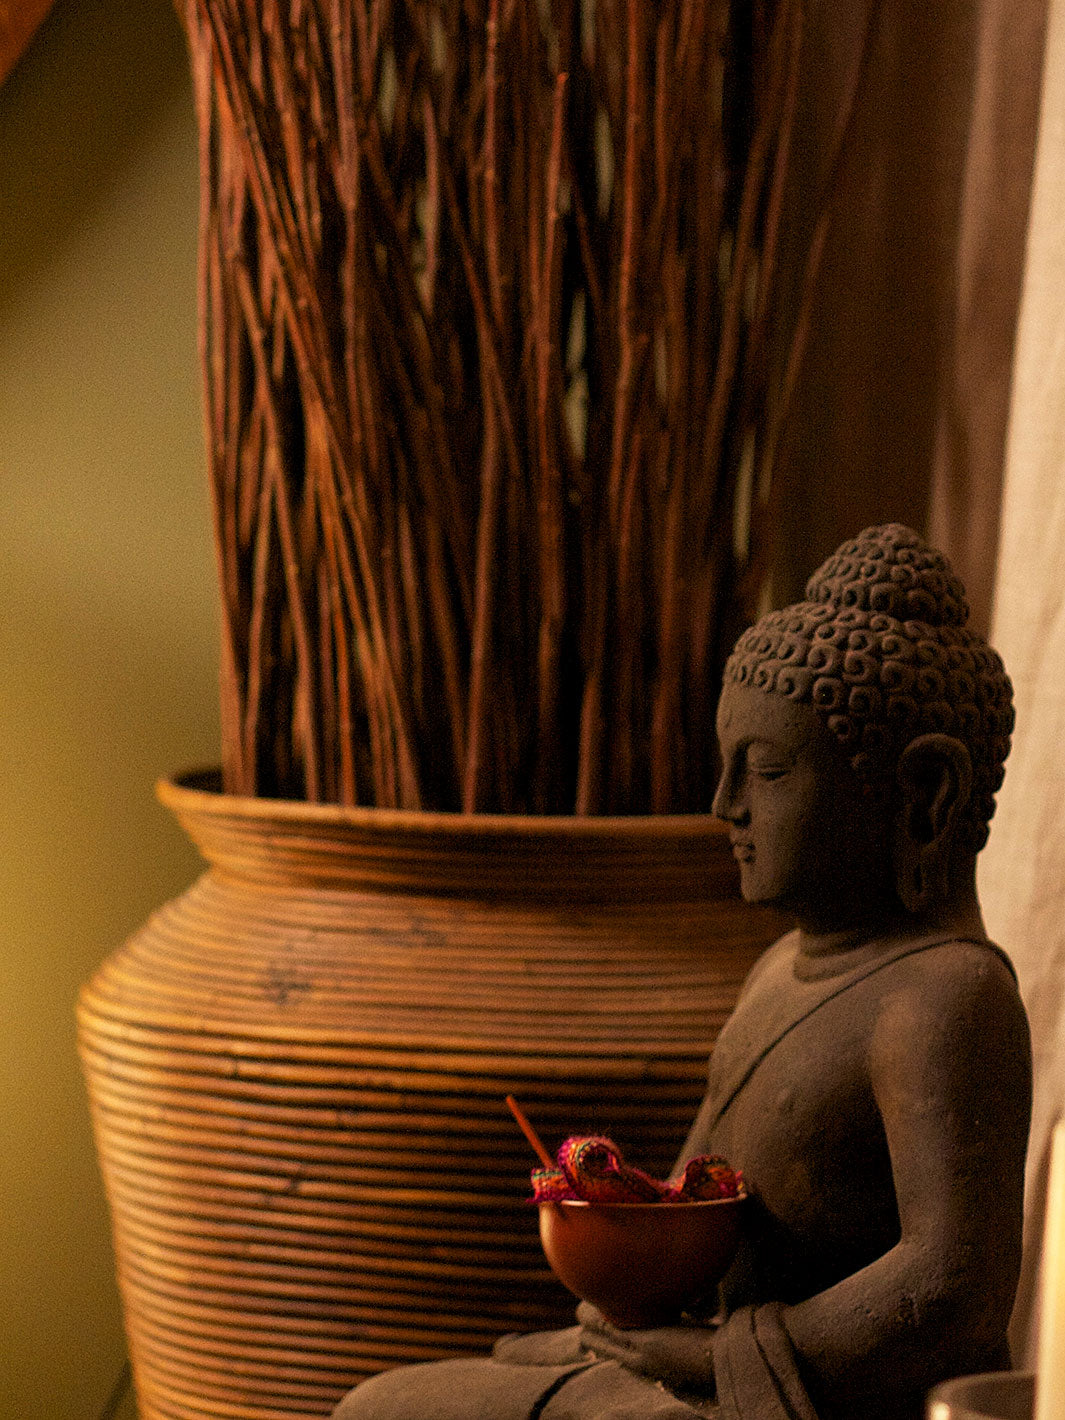 A Buddha statue in the waiting room of the Euphoria Spa